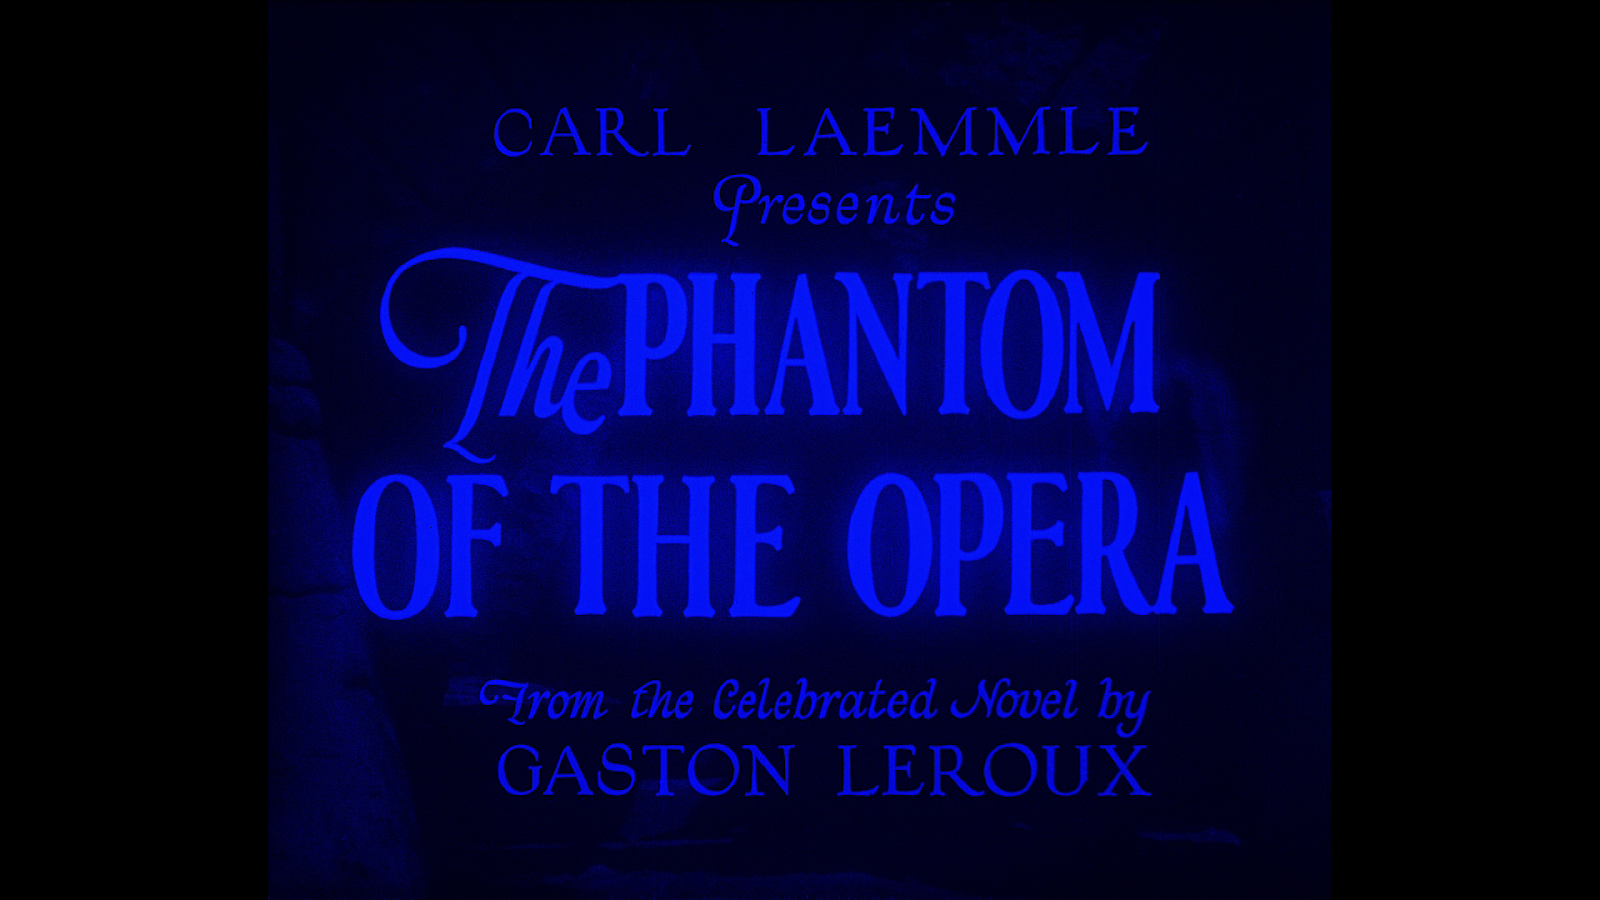 Nerdly Pleasures: Versions and Sources of the Phantom of the Opera